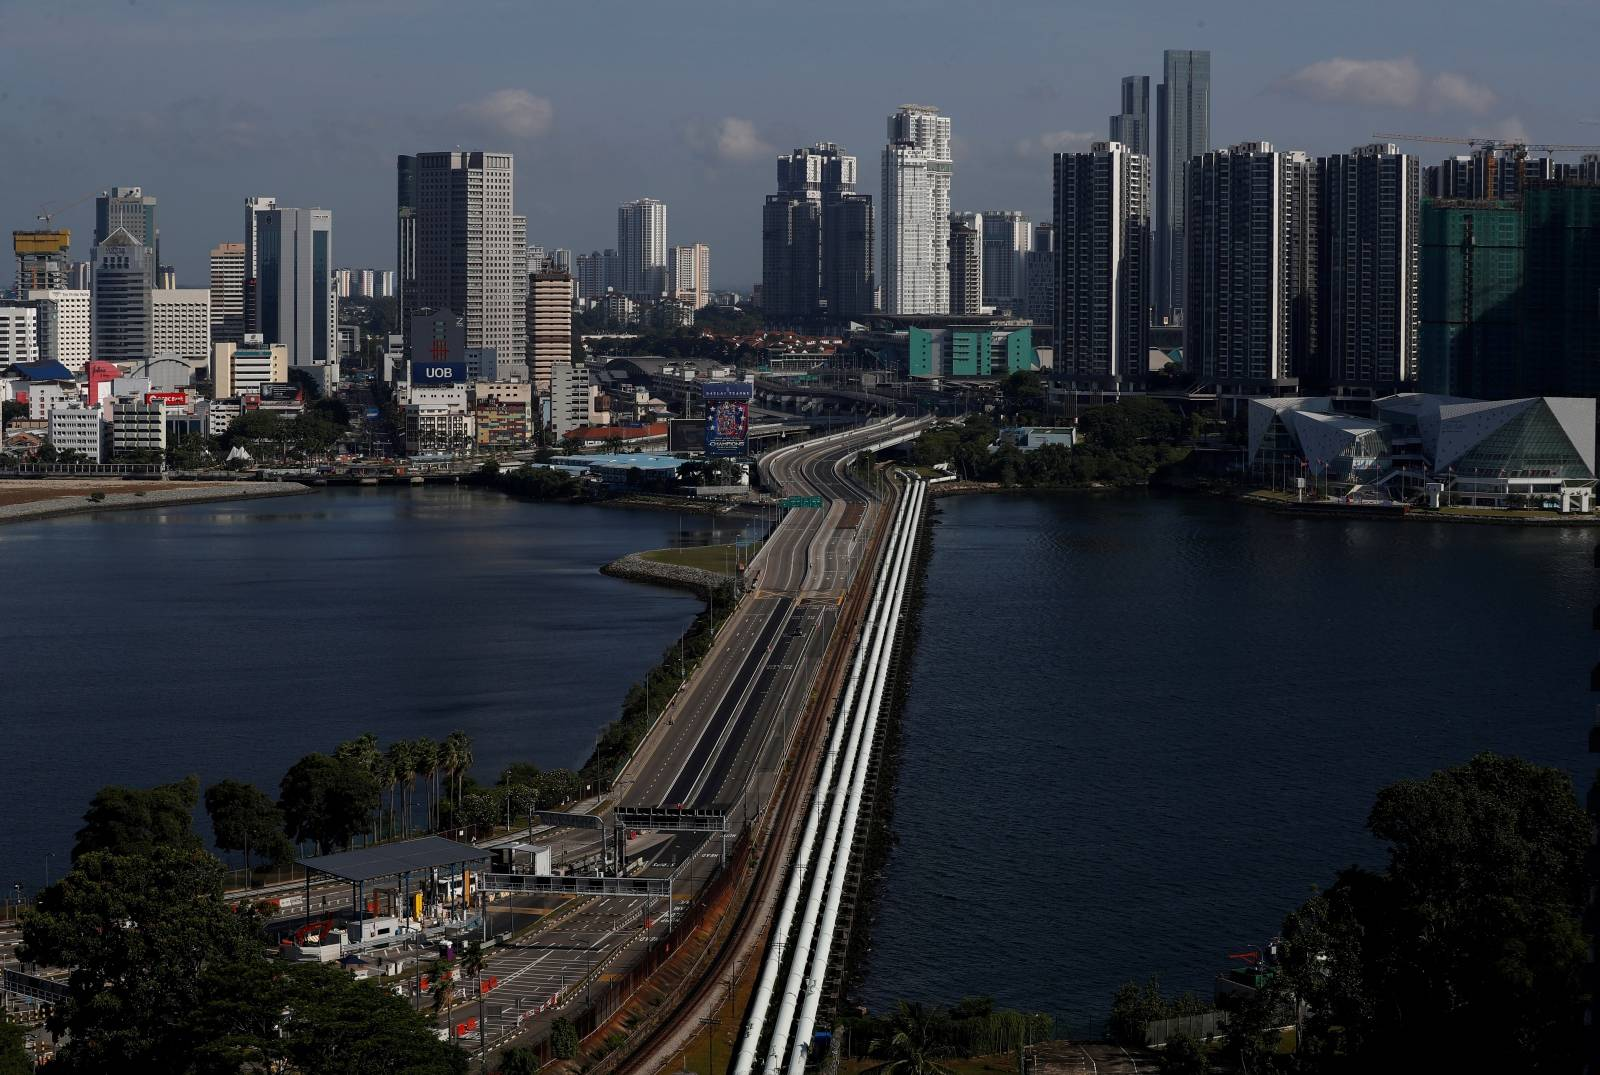 FILE PHOTO: A view of the empty Woodlands Causeway between Singapore and Malaysia after Malaysia imposed a lockdown on travel due to the coronavirus disease (COVID-19) outbreak